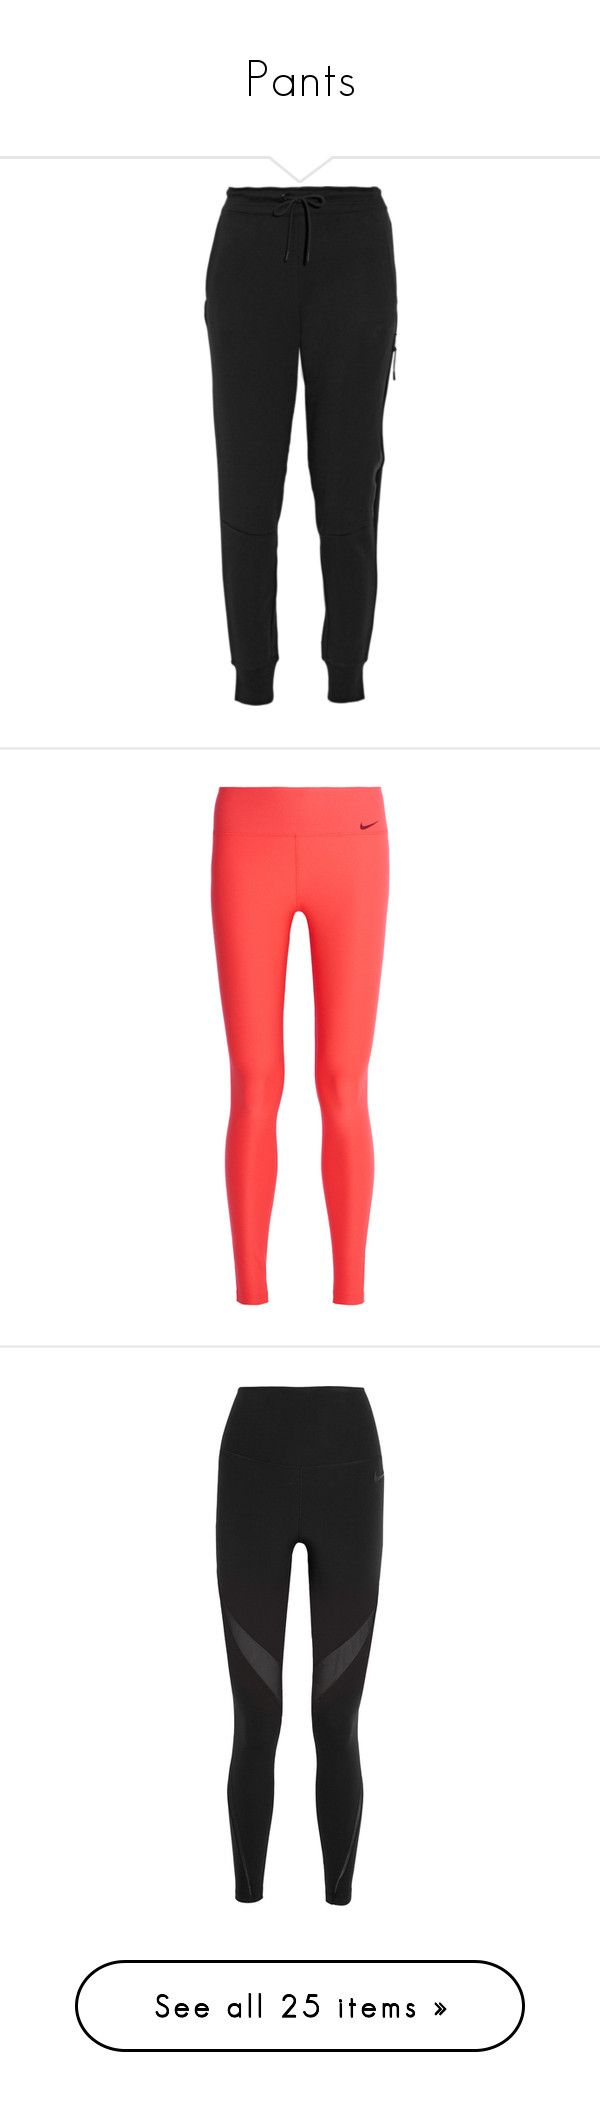 """""""Pants"""" by kaileyhava ❤ liked on Polyvore featuring activewear, activewear pants, nike, pants, bottoms, sweatpants, black, tech fleece sweatpants, tapered sweatpants and nike sweatpants"""